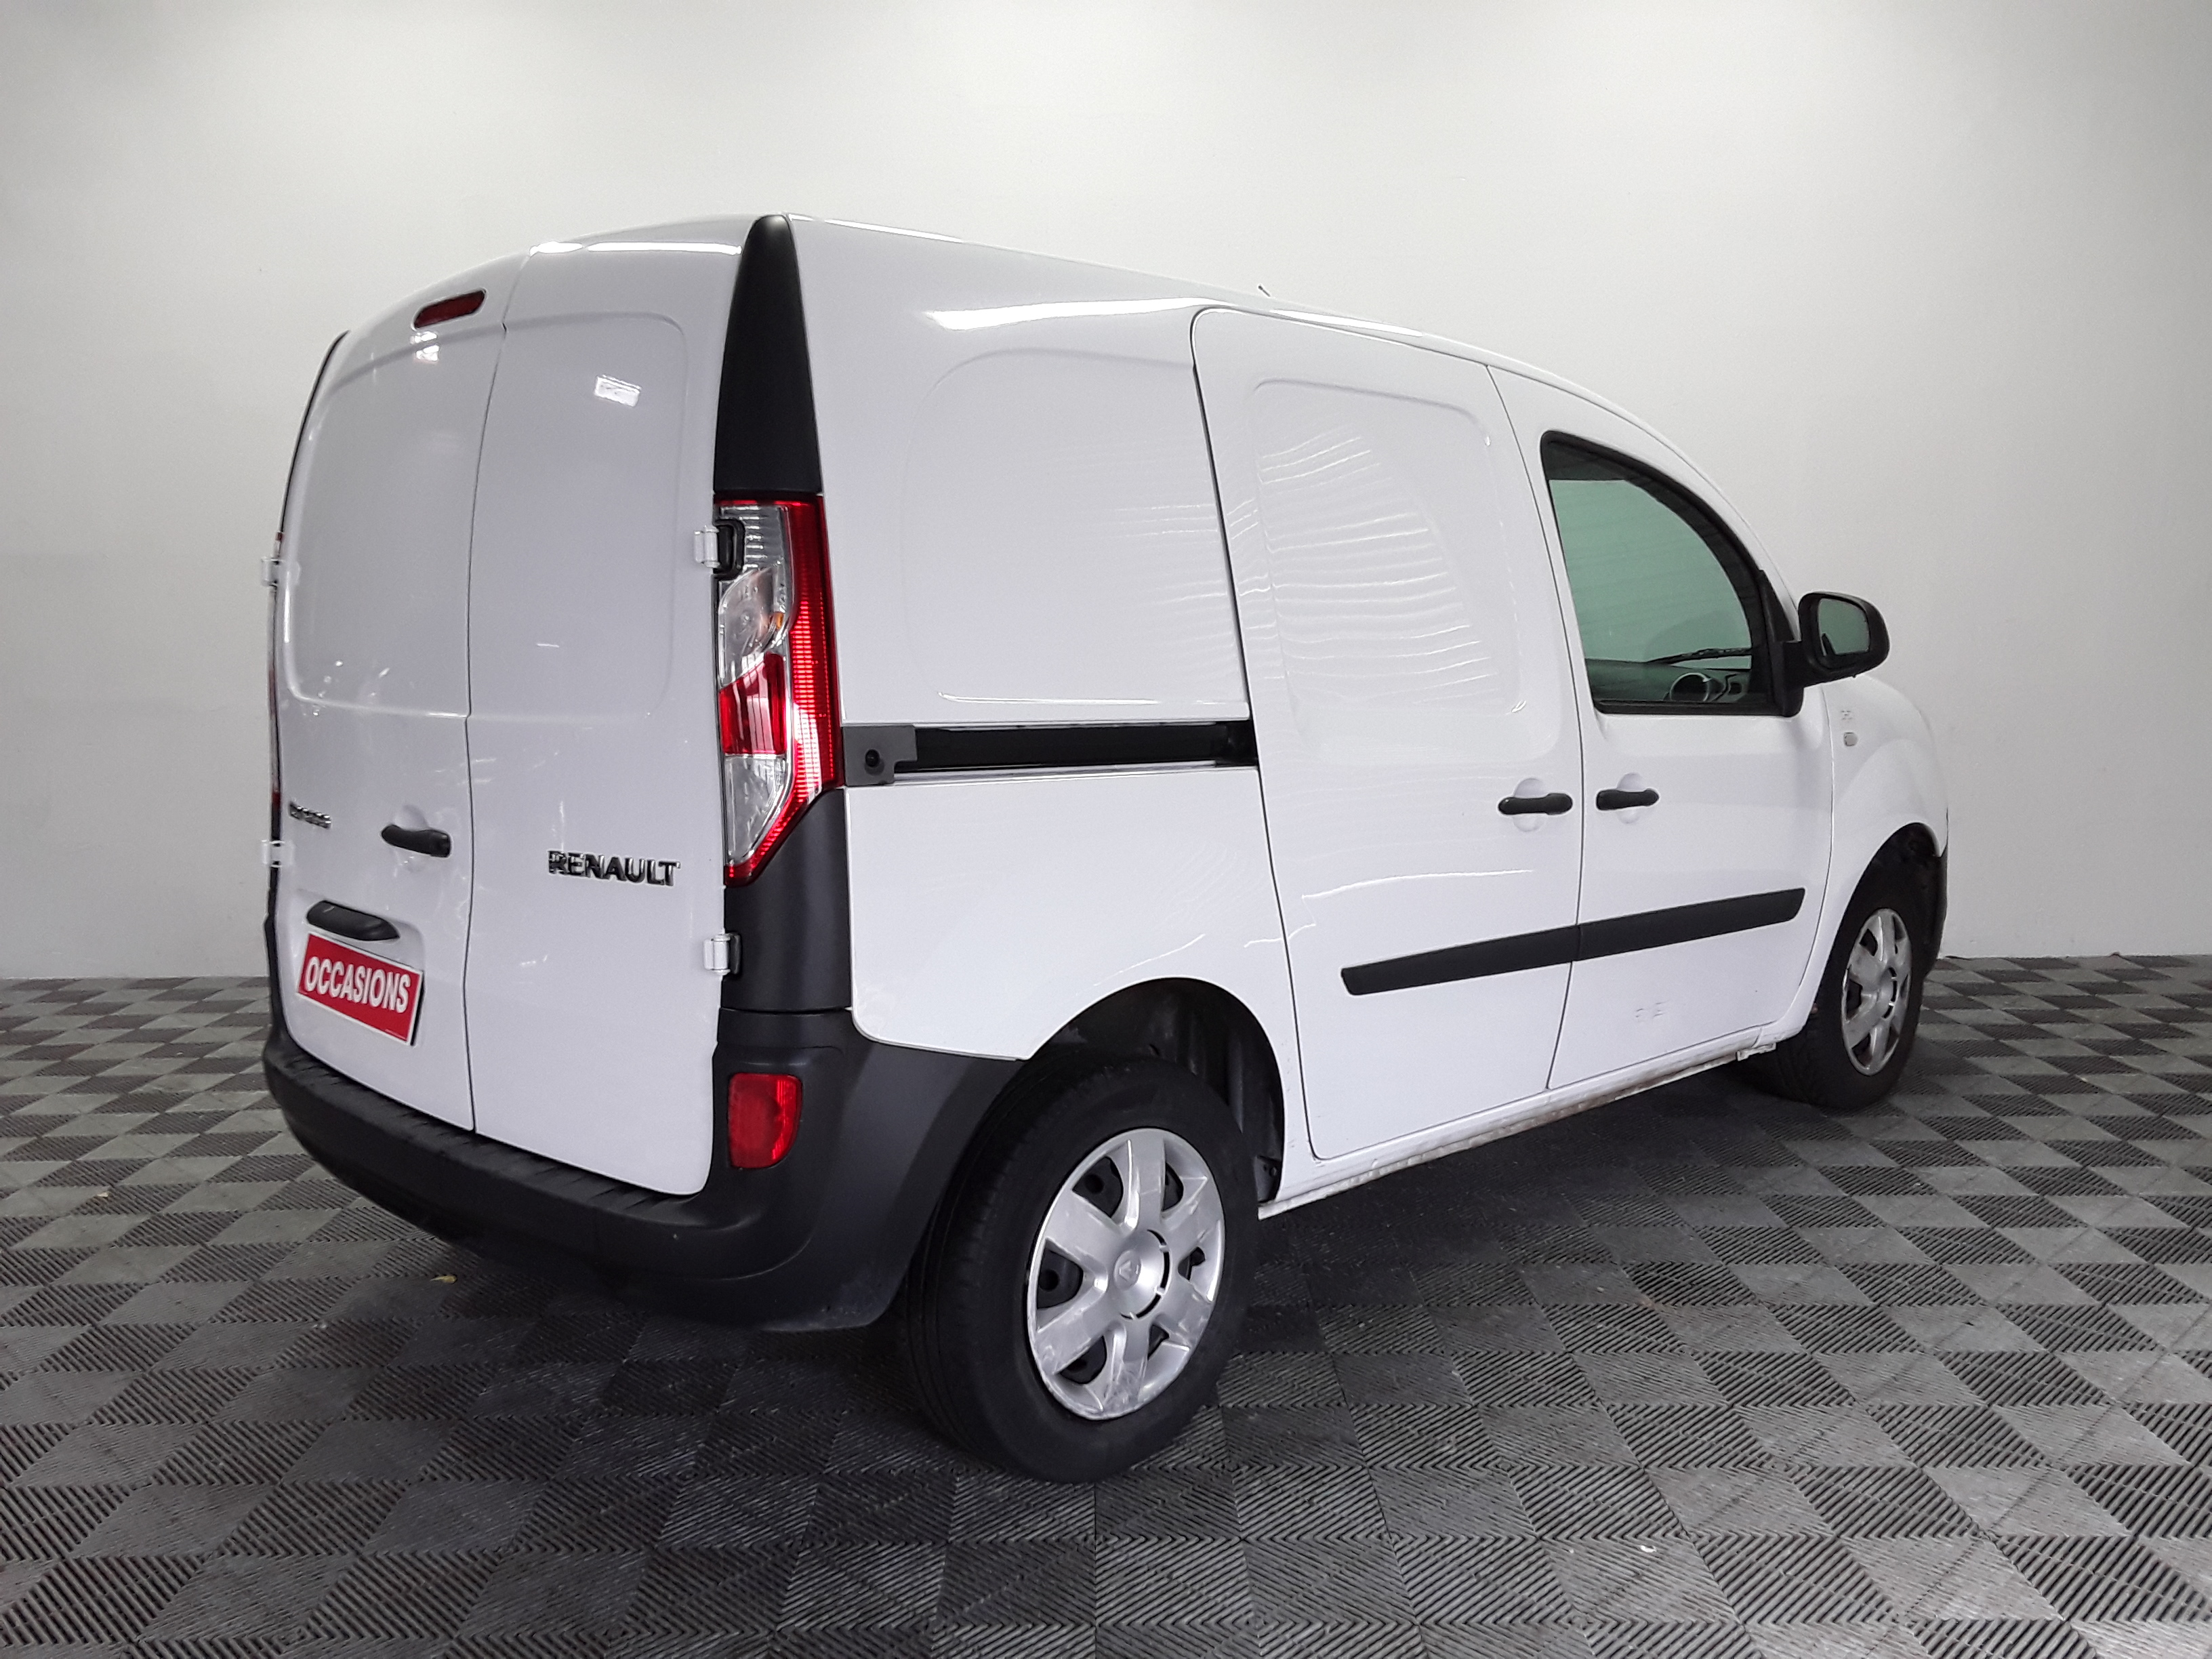 RENAULT KANGOO EXPRESS 2015 à 7400 € - Photo n°4